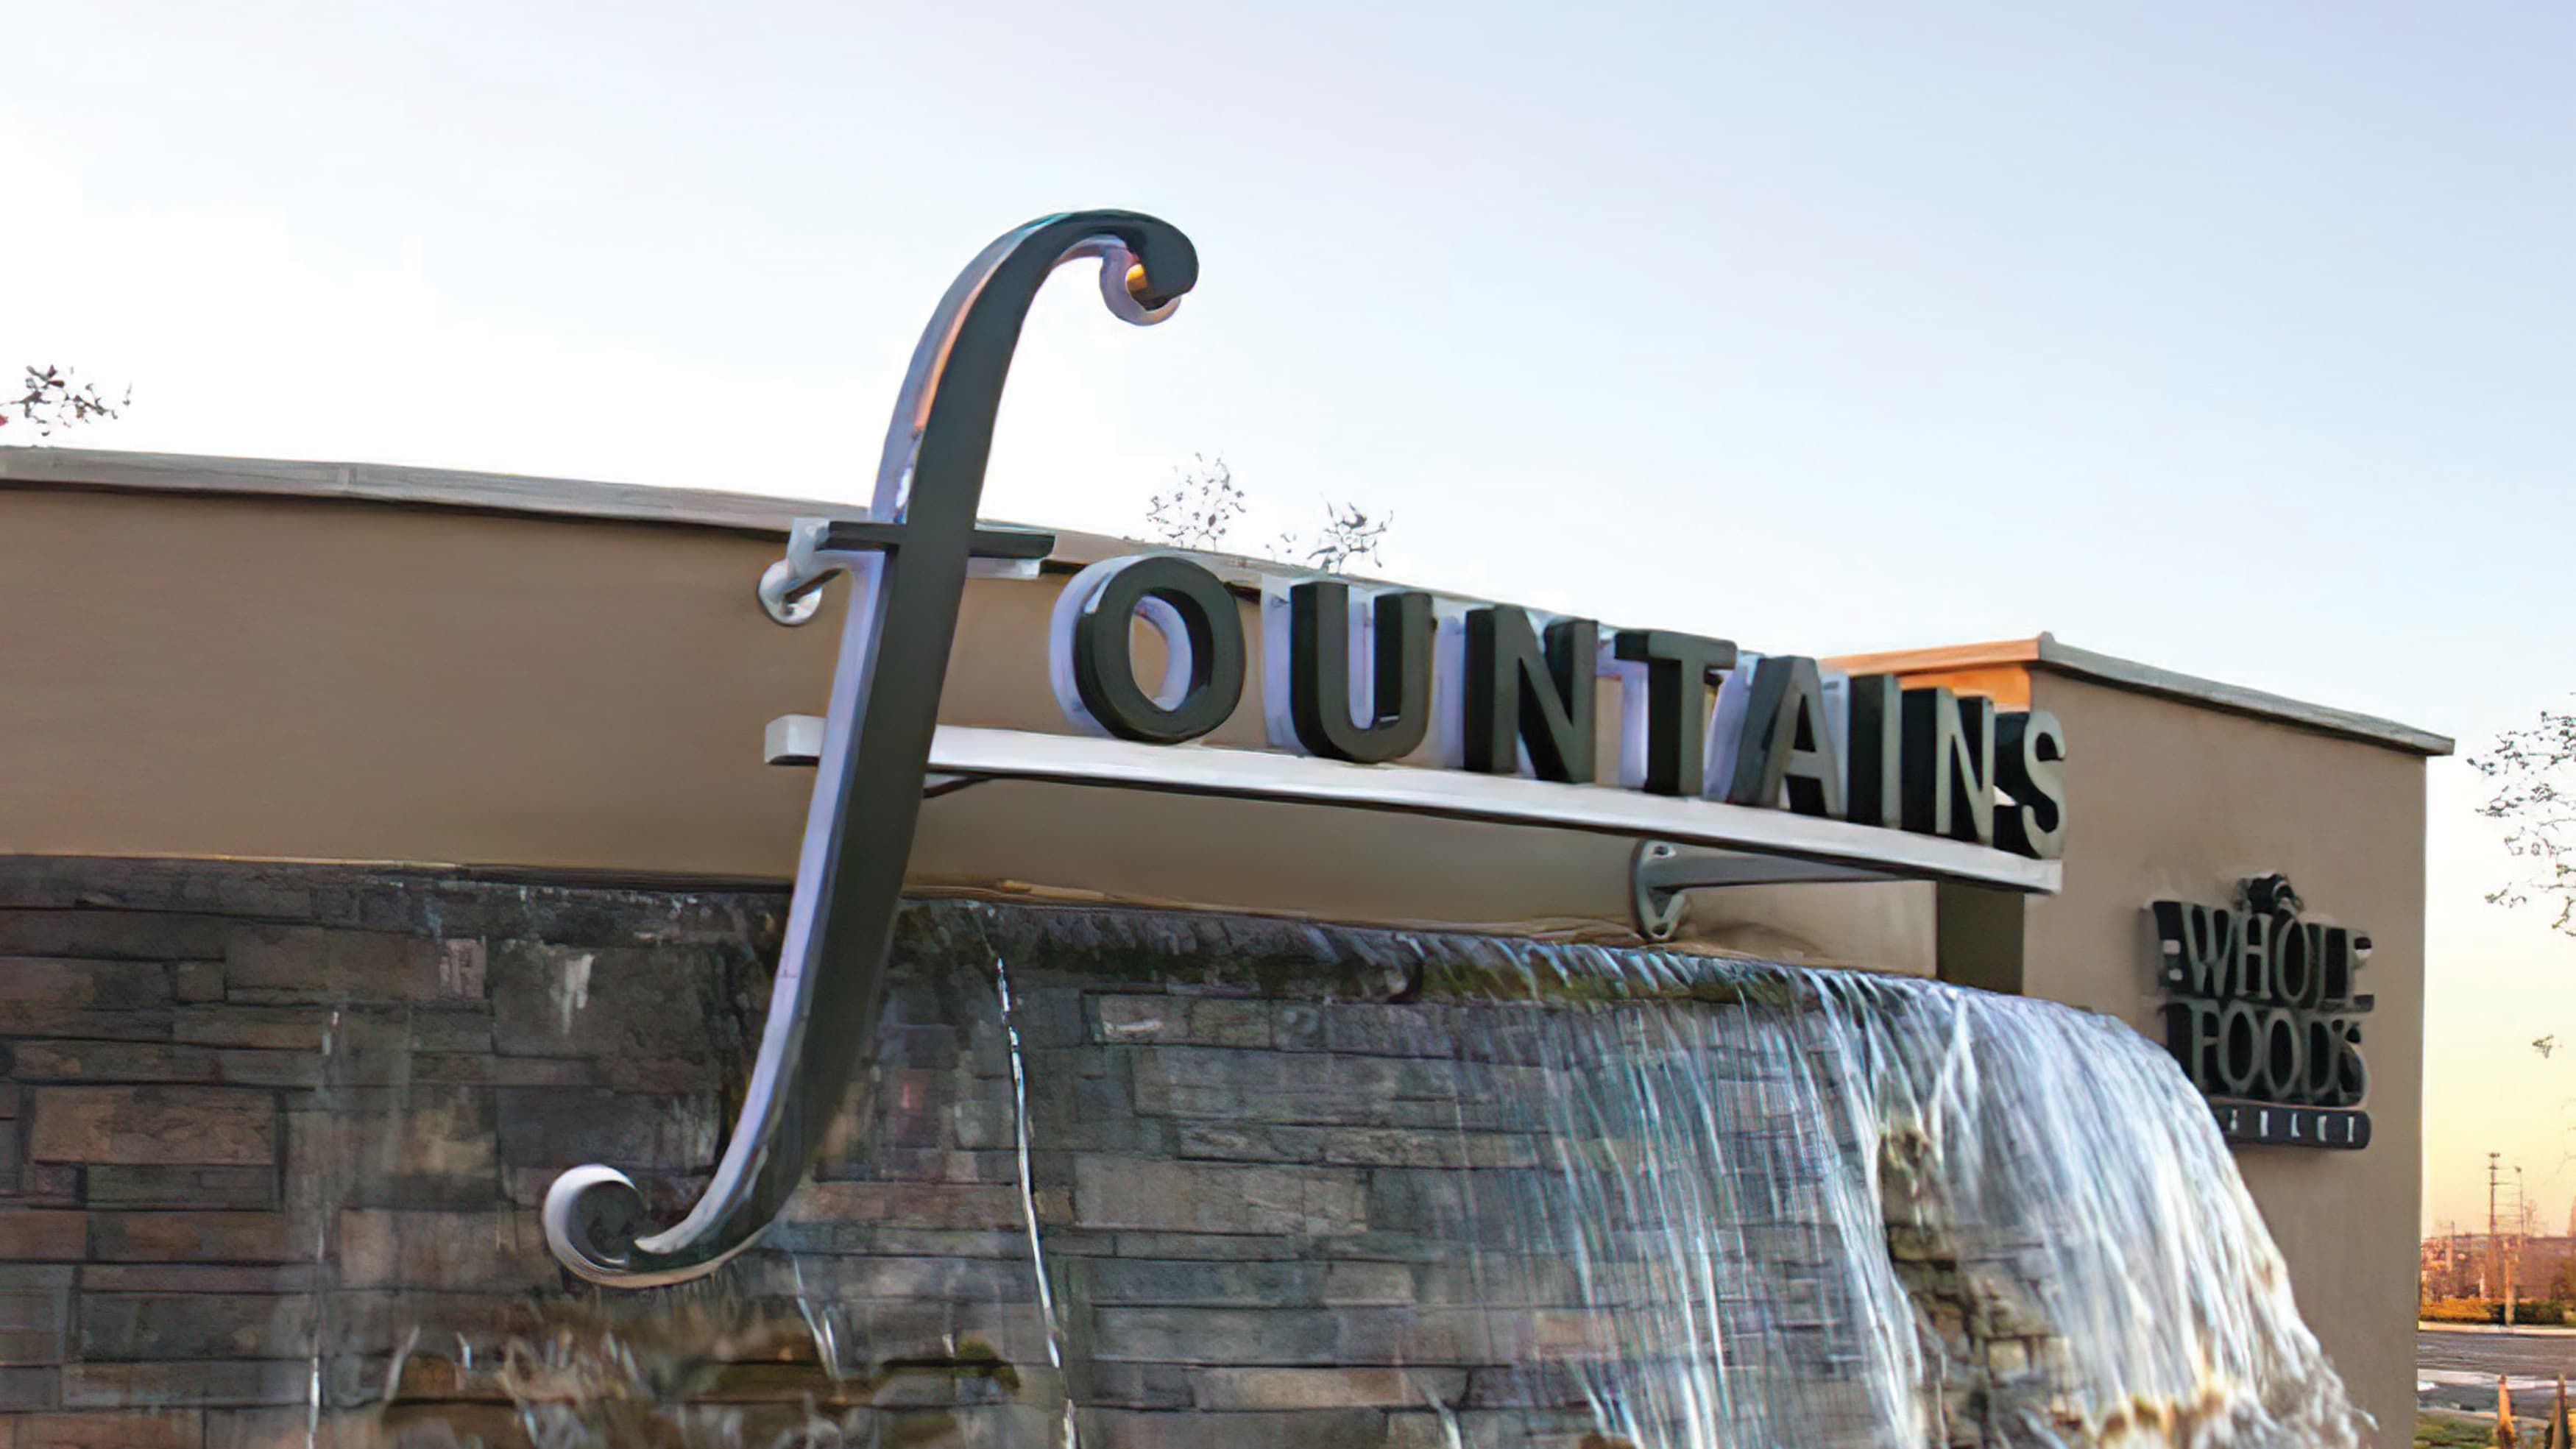 The Fountains at Roseville were recently recognized with an honorable mention award in the latest Signs of the Times 2009 International Sign Contest